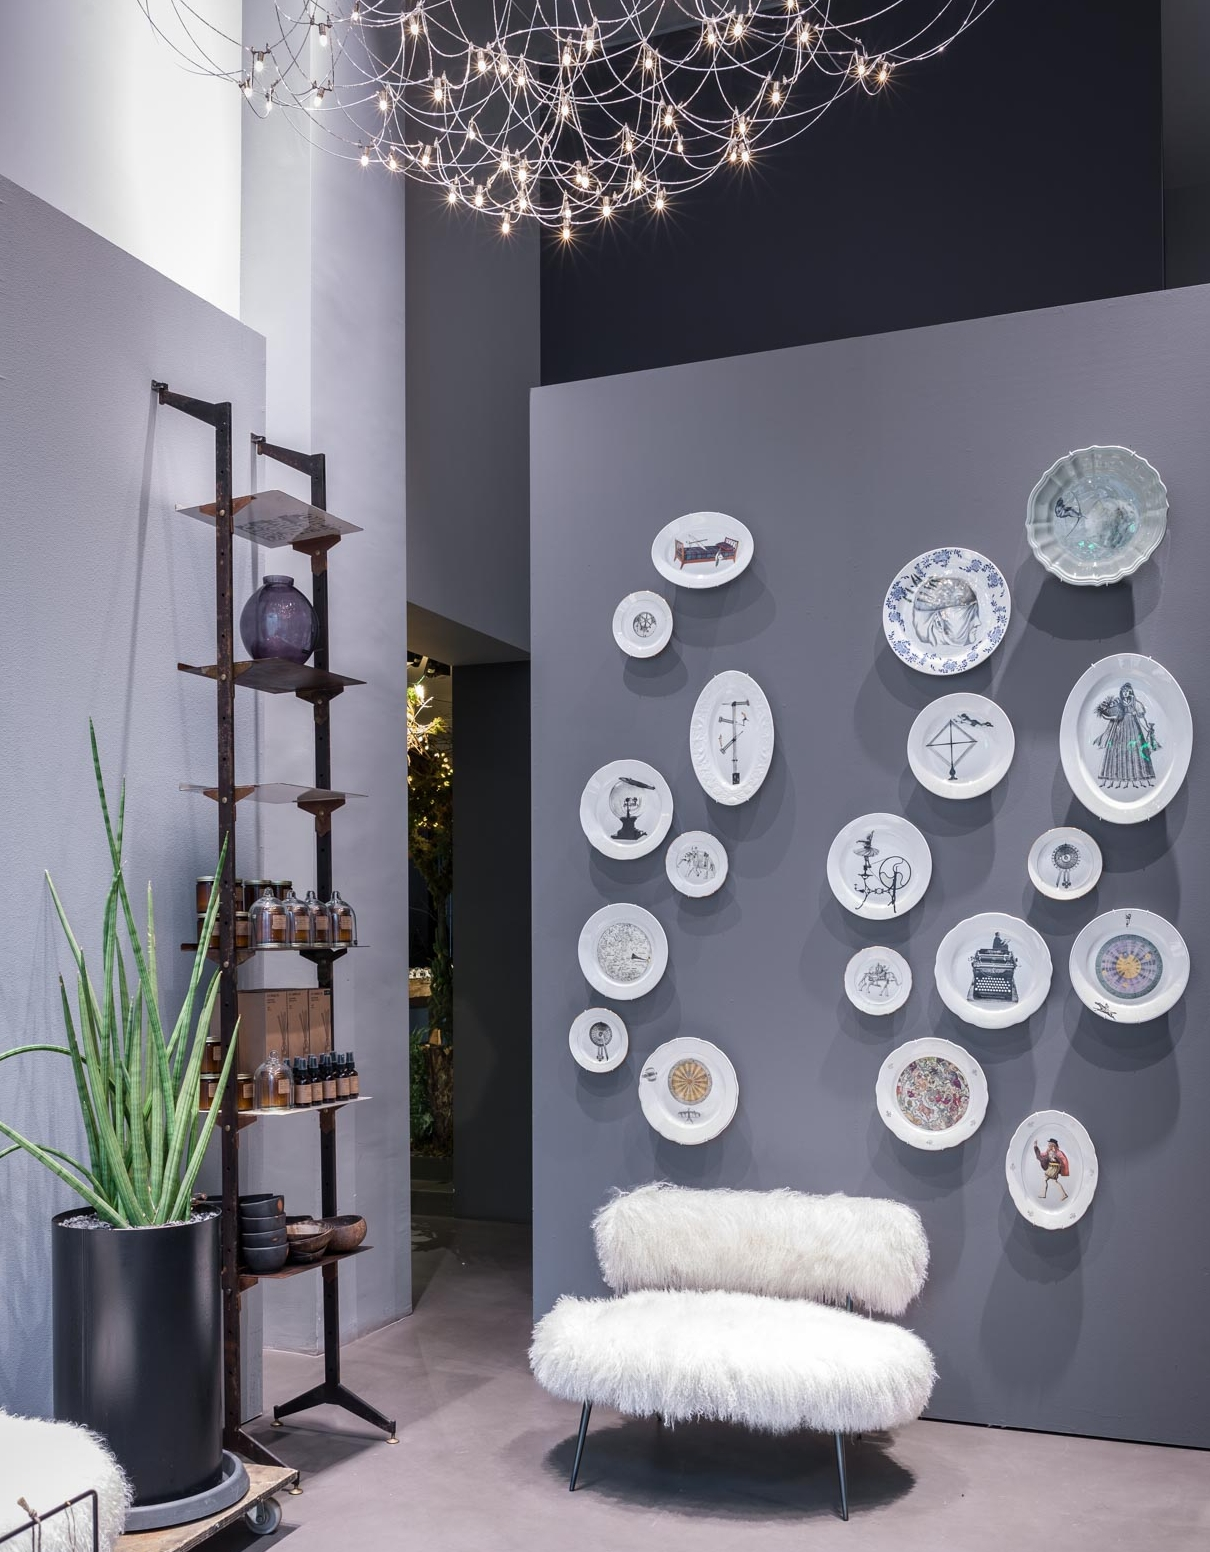 One-of-a-kind pieces wall display | Pezzi unici a parete in vista dalla vetrina